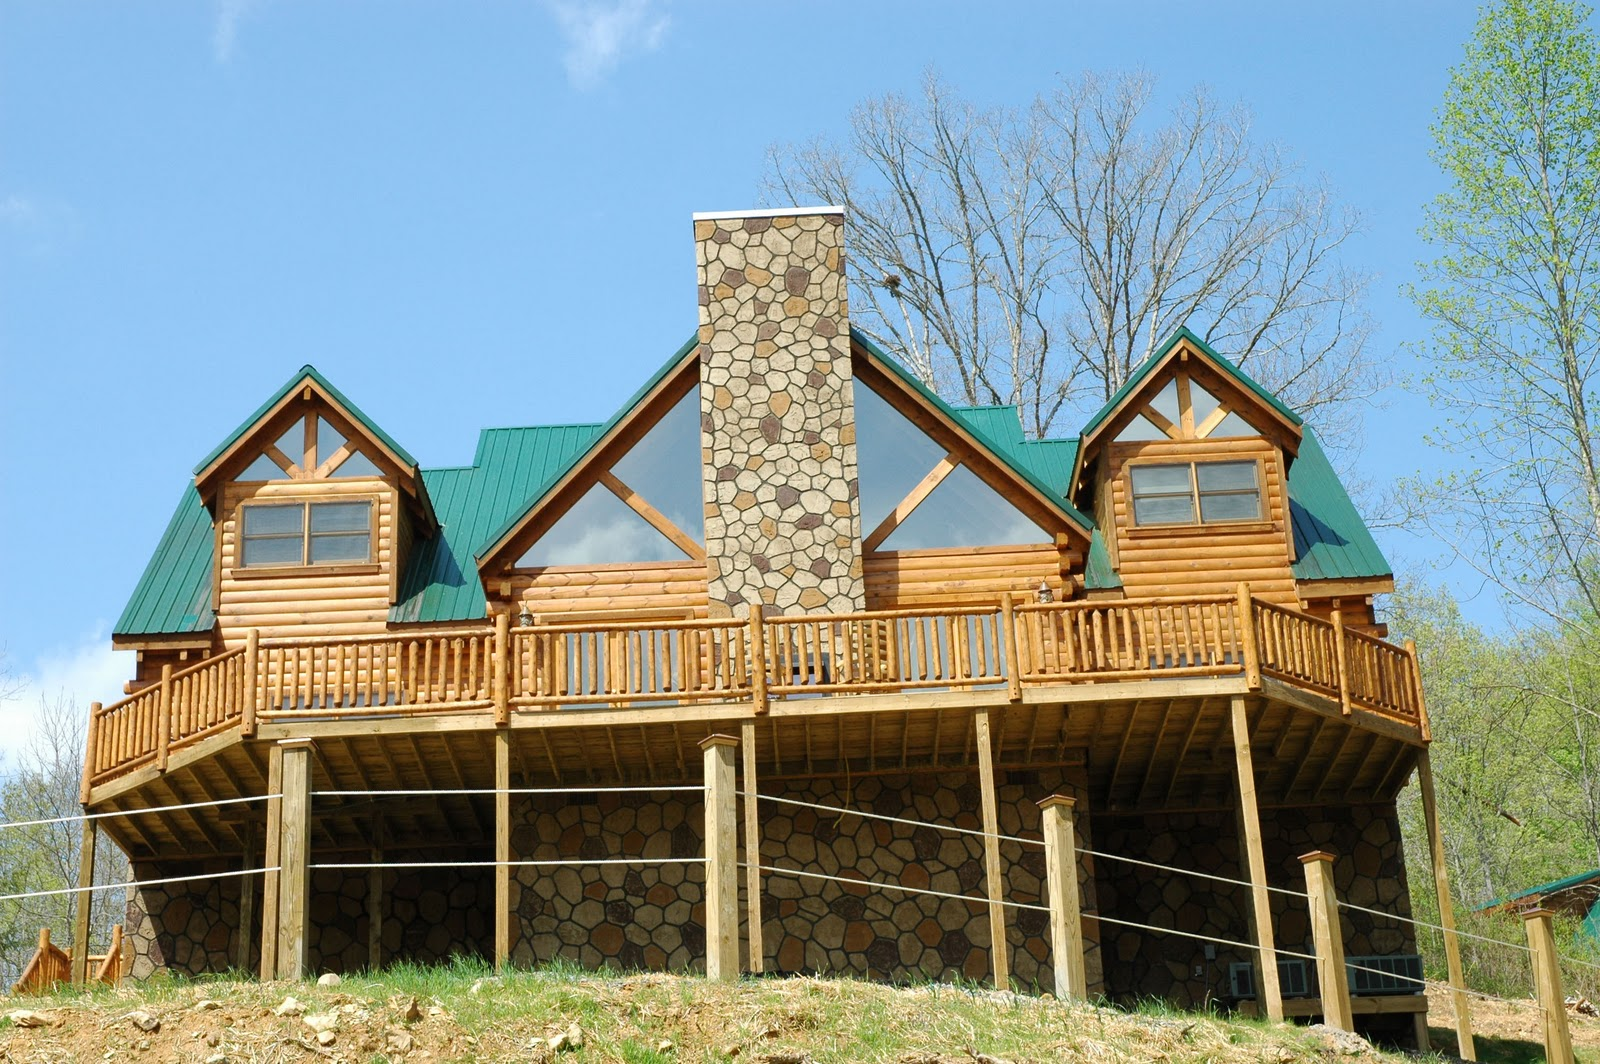 rentals org pools cabin gatlinburg tennessee friendly cheap gatlburg getconnectedforkids indoor with tn cabins pet